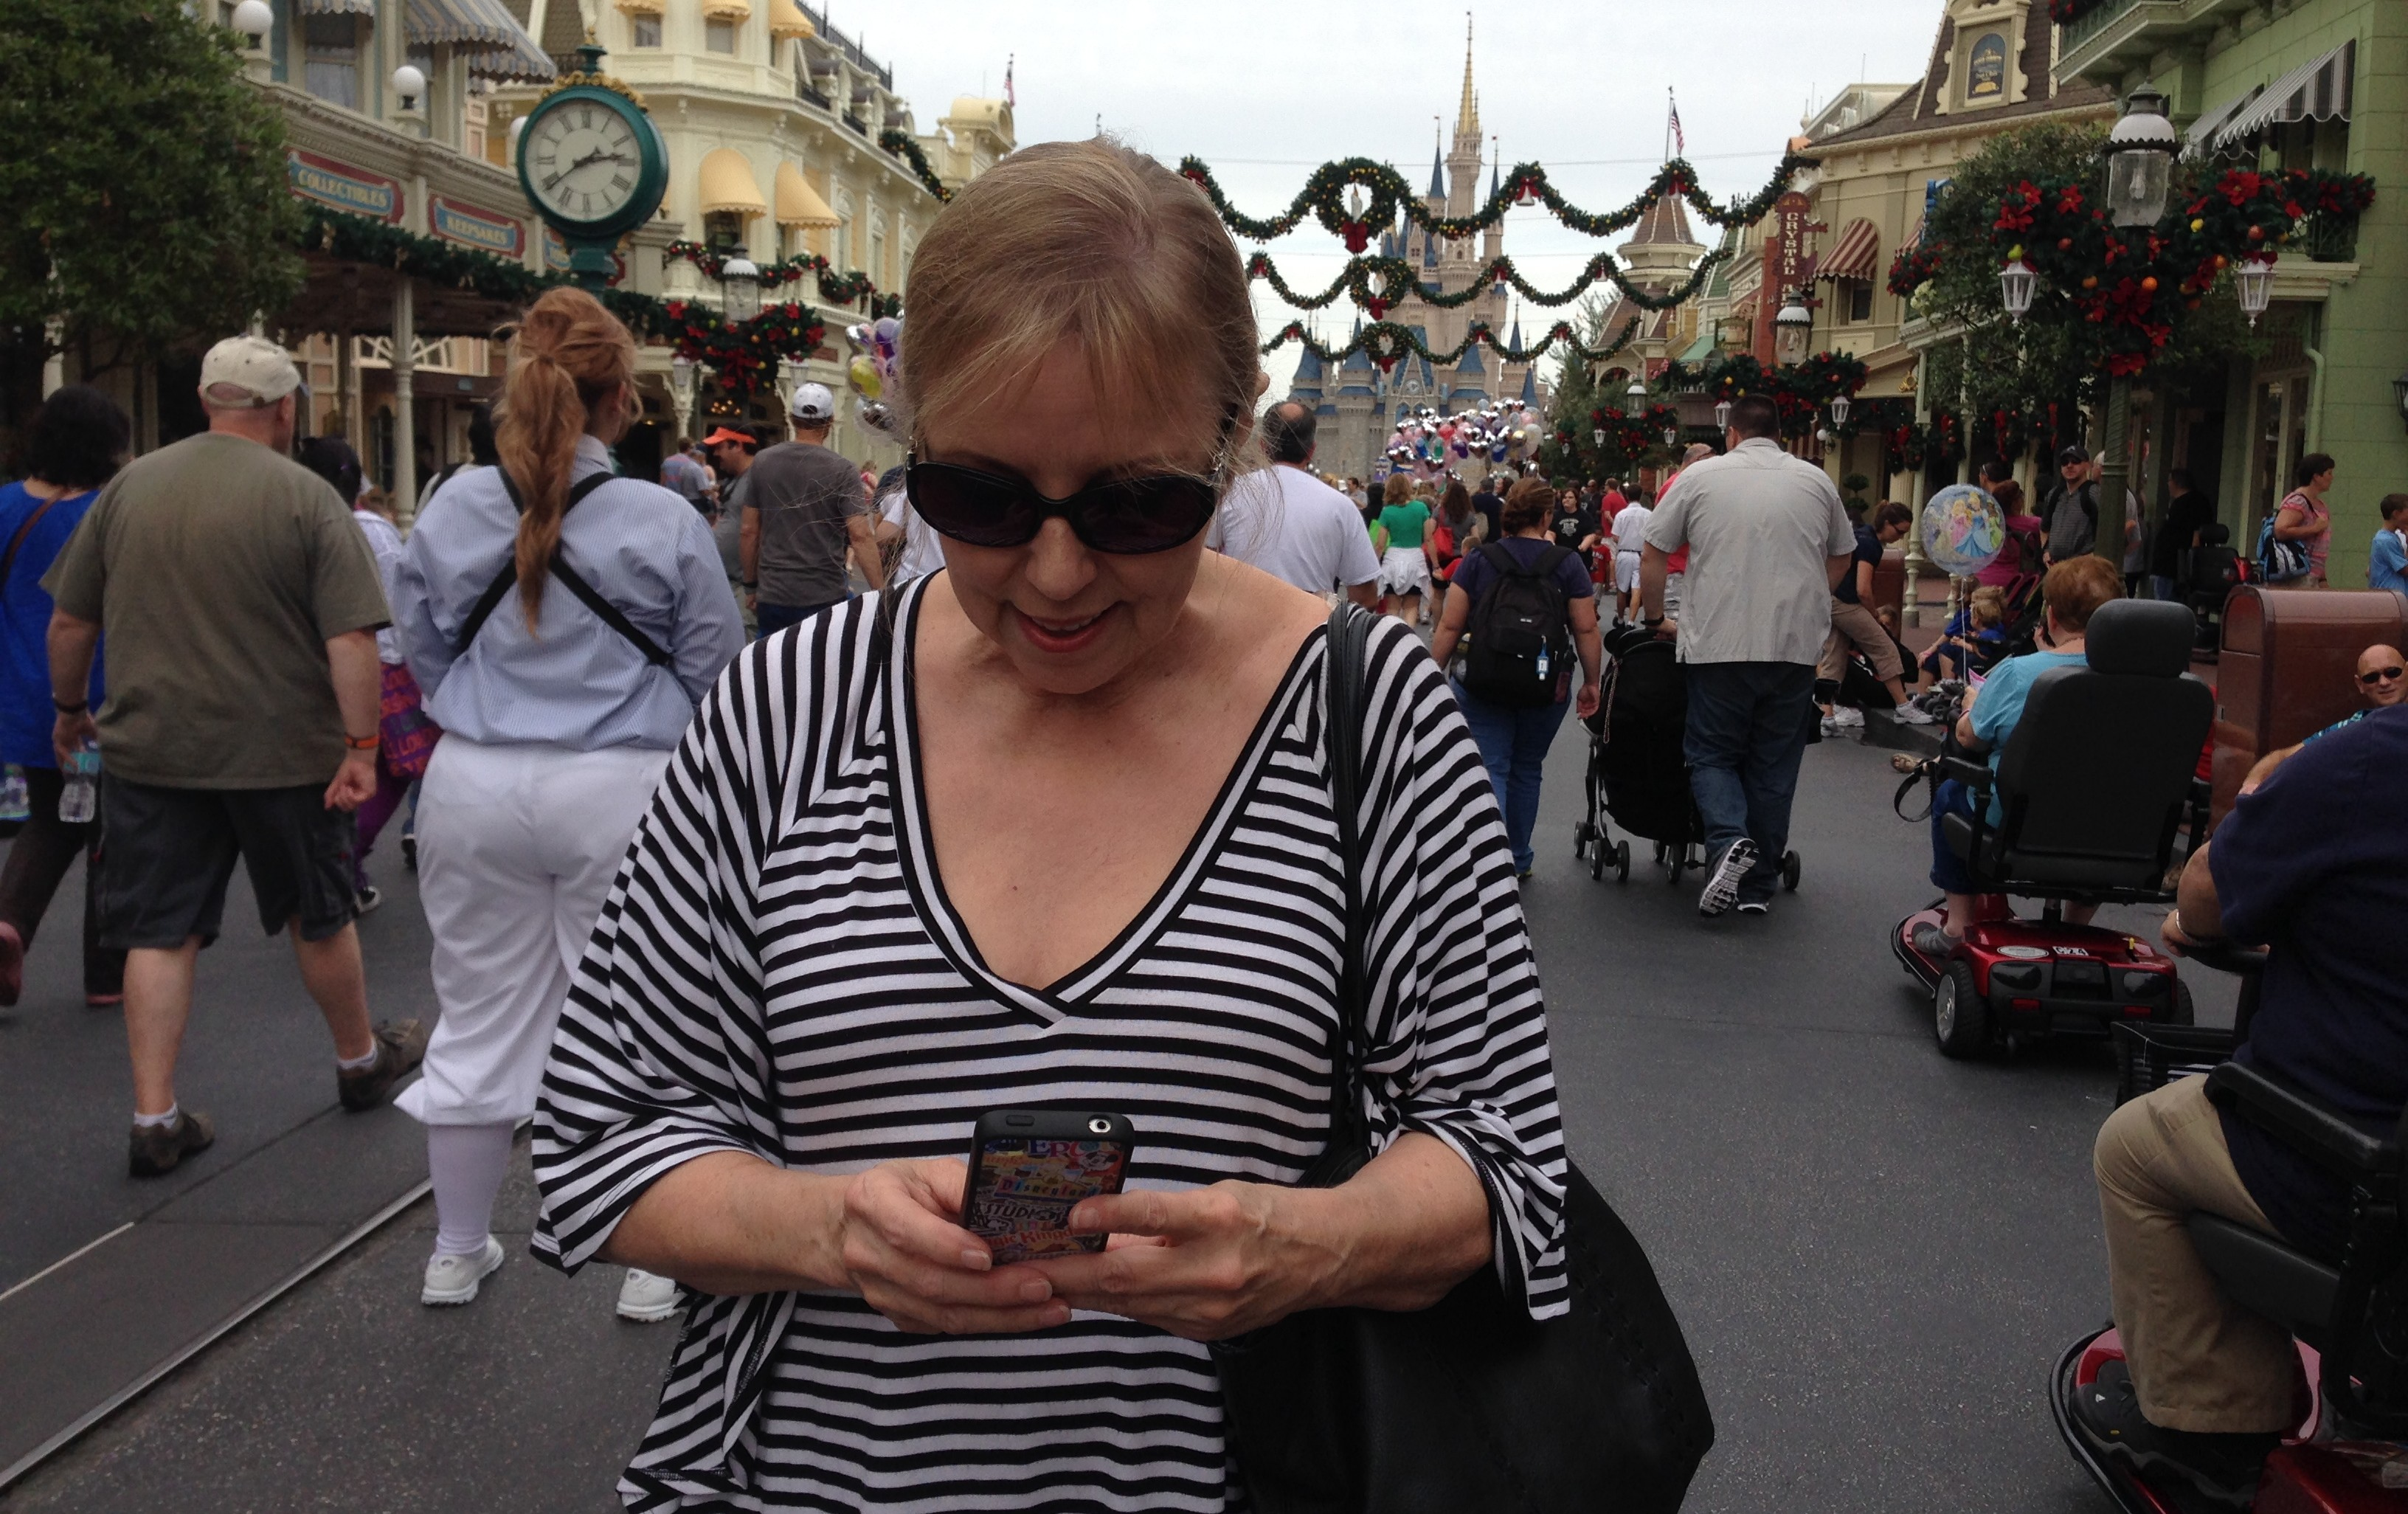 theme park guests use phones